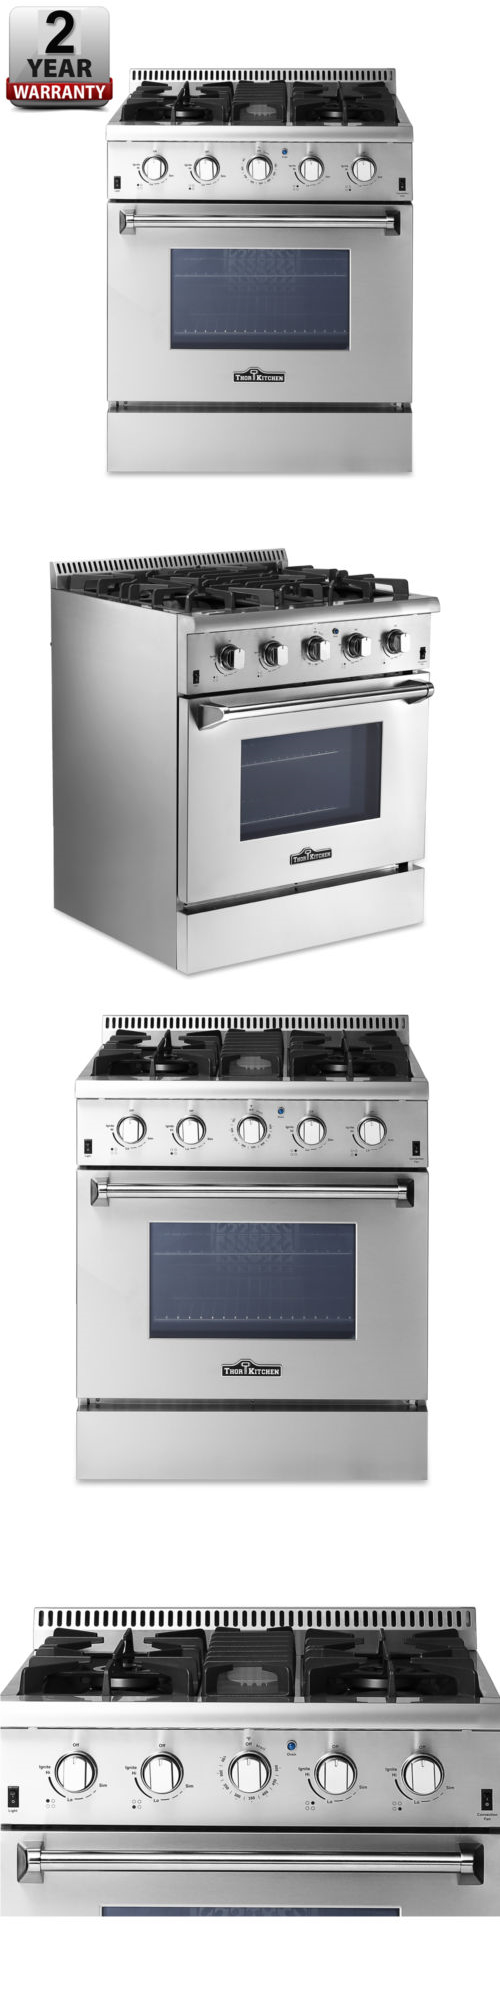 ranges and stoves 30 gas range 4 burners w gridldle stainless steel thor kitchen